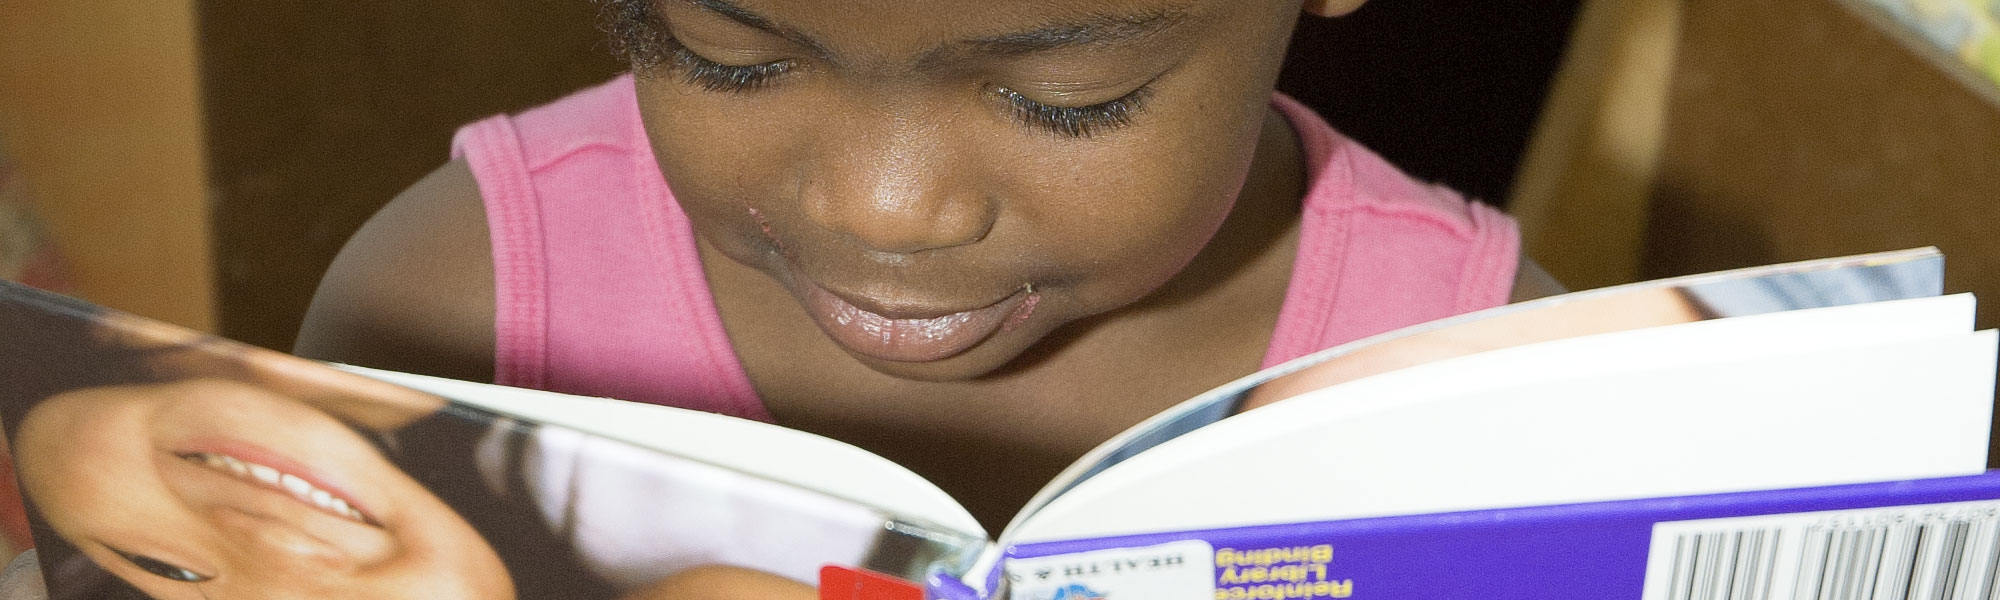 little girl reading a book upside down